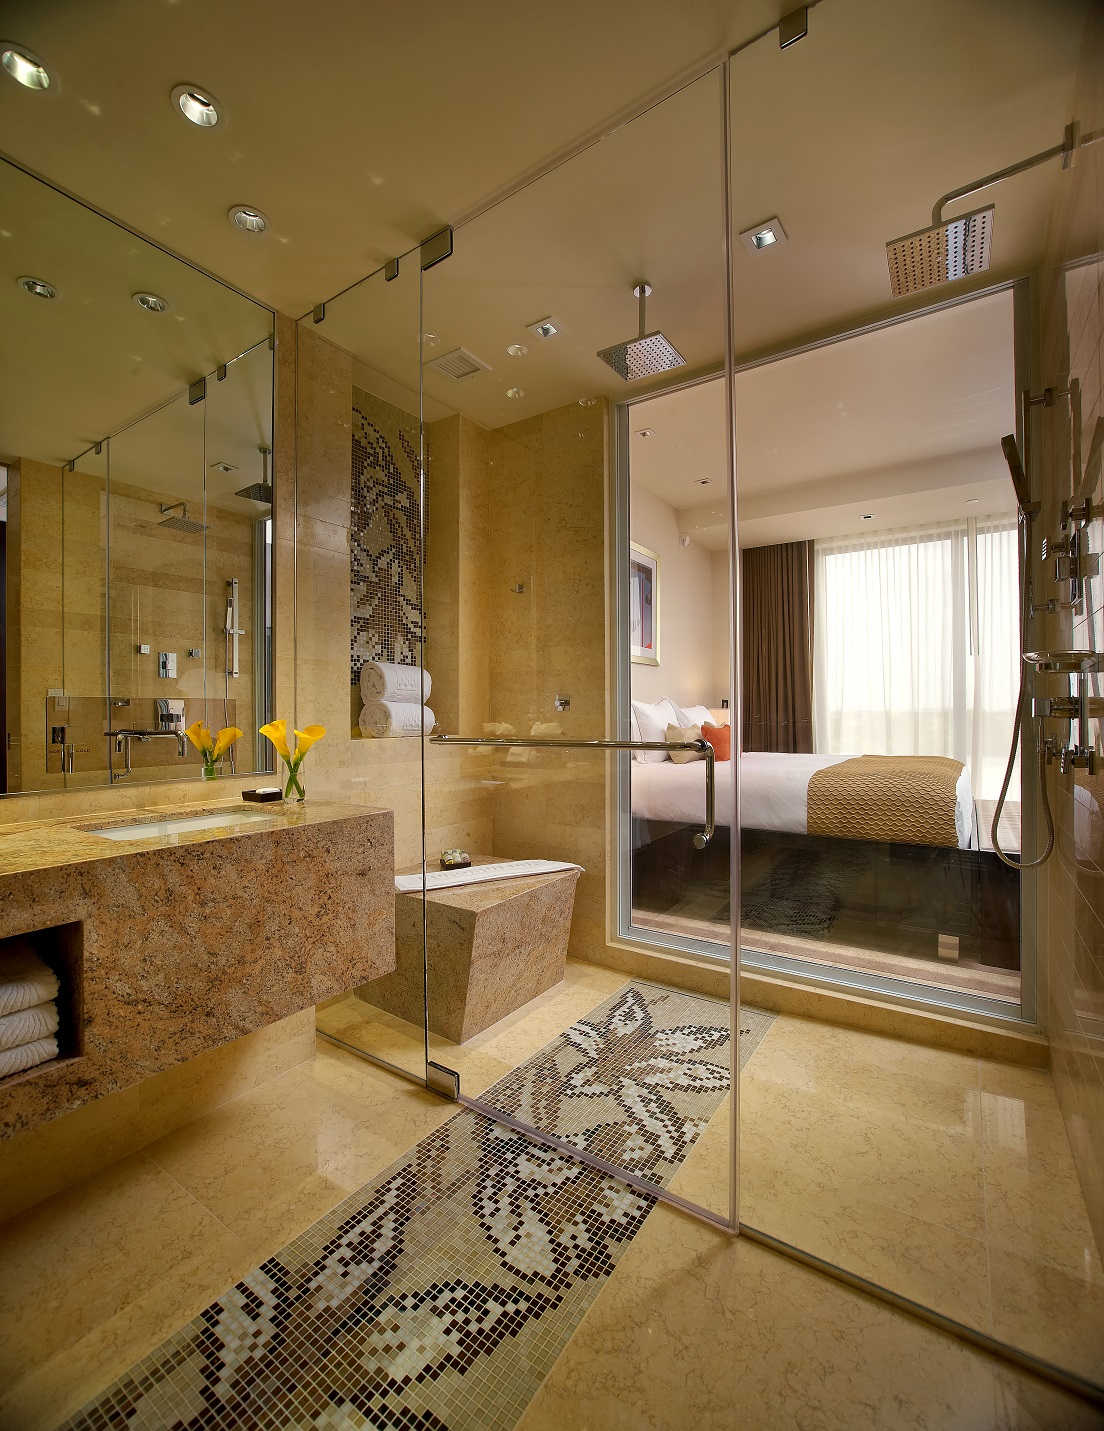 https://www.hotelsbyday.com/_data/default-hotel_image/1/9053/eb-310-bath-a.jpg